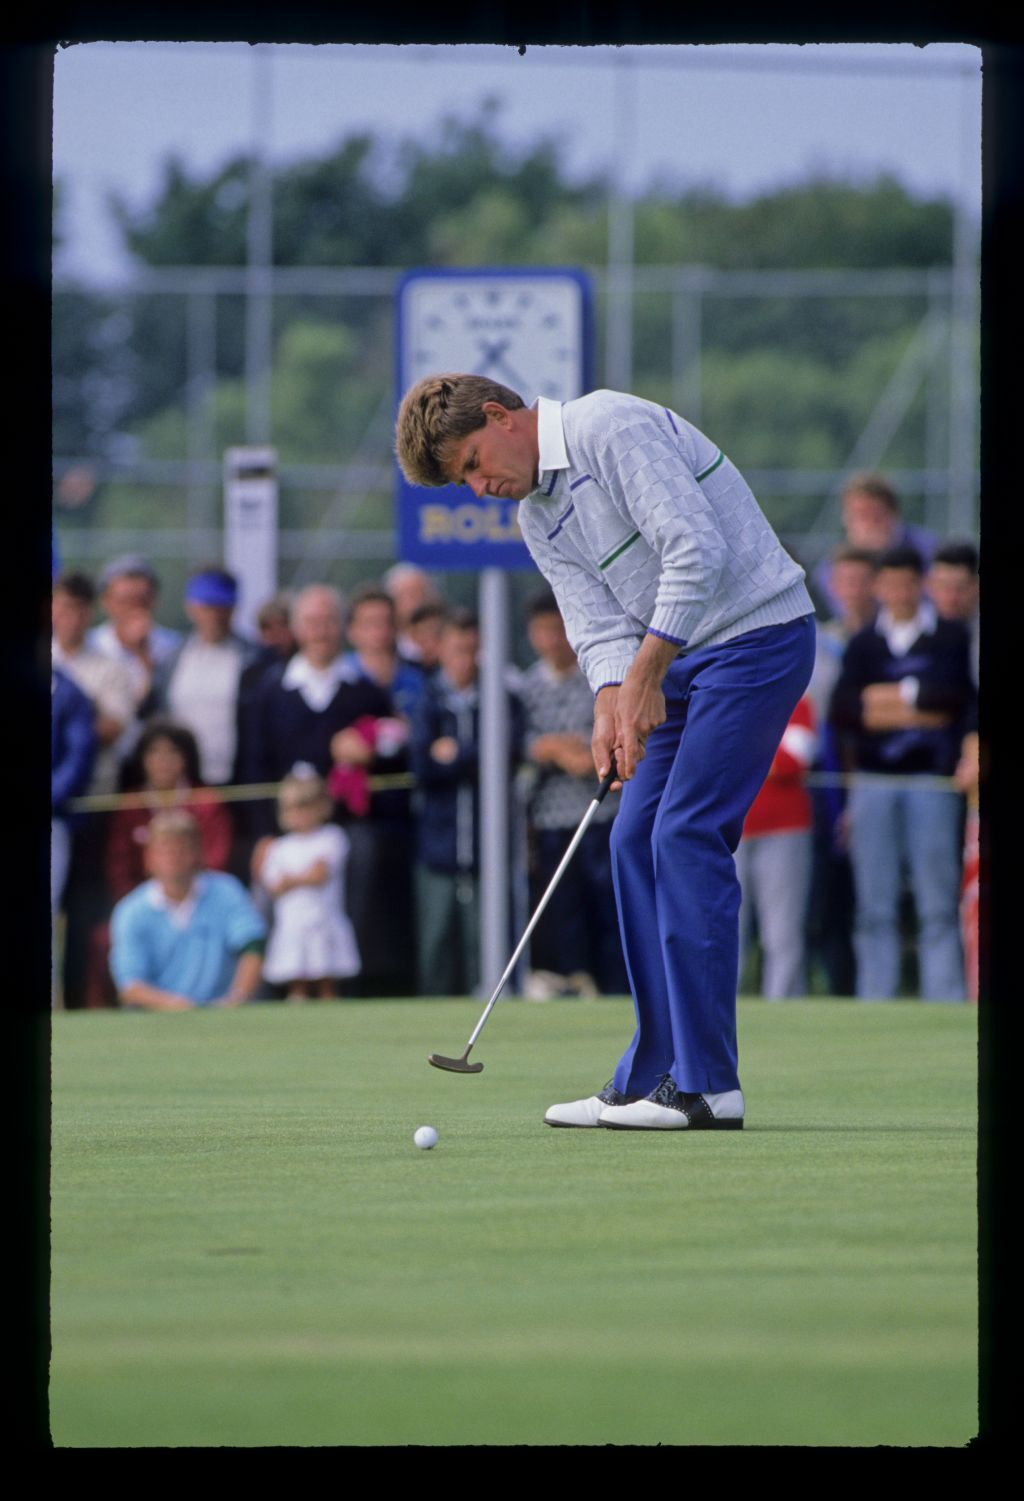 Nick Price putting on his way to second place at the 1988 Open Championship